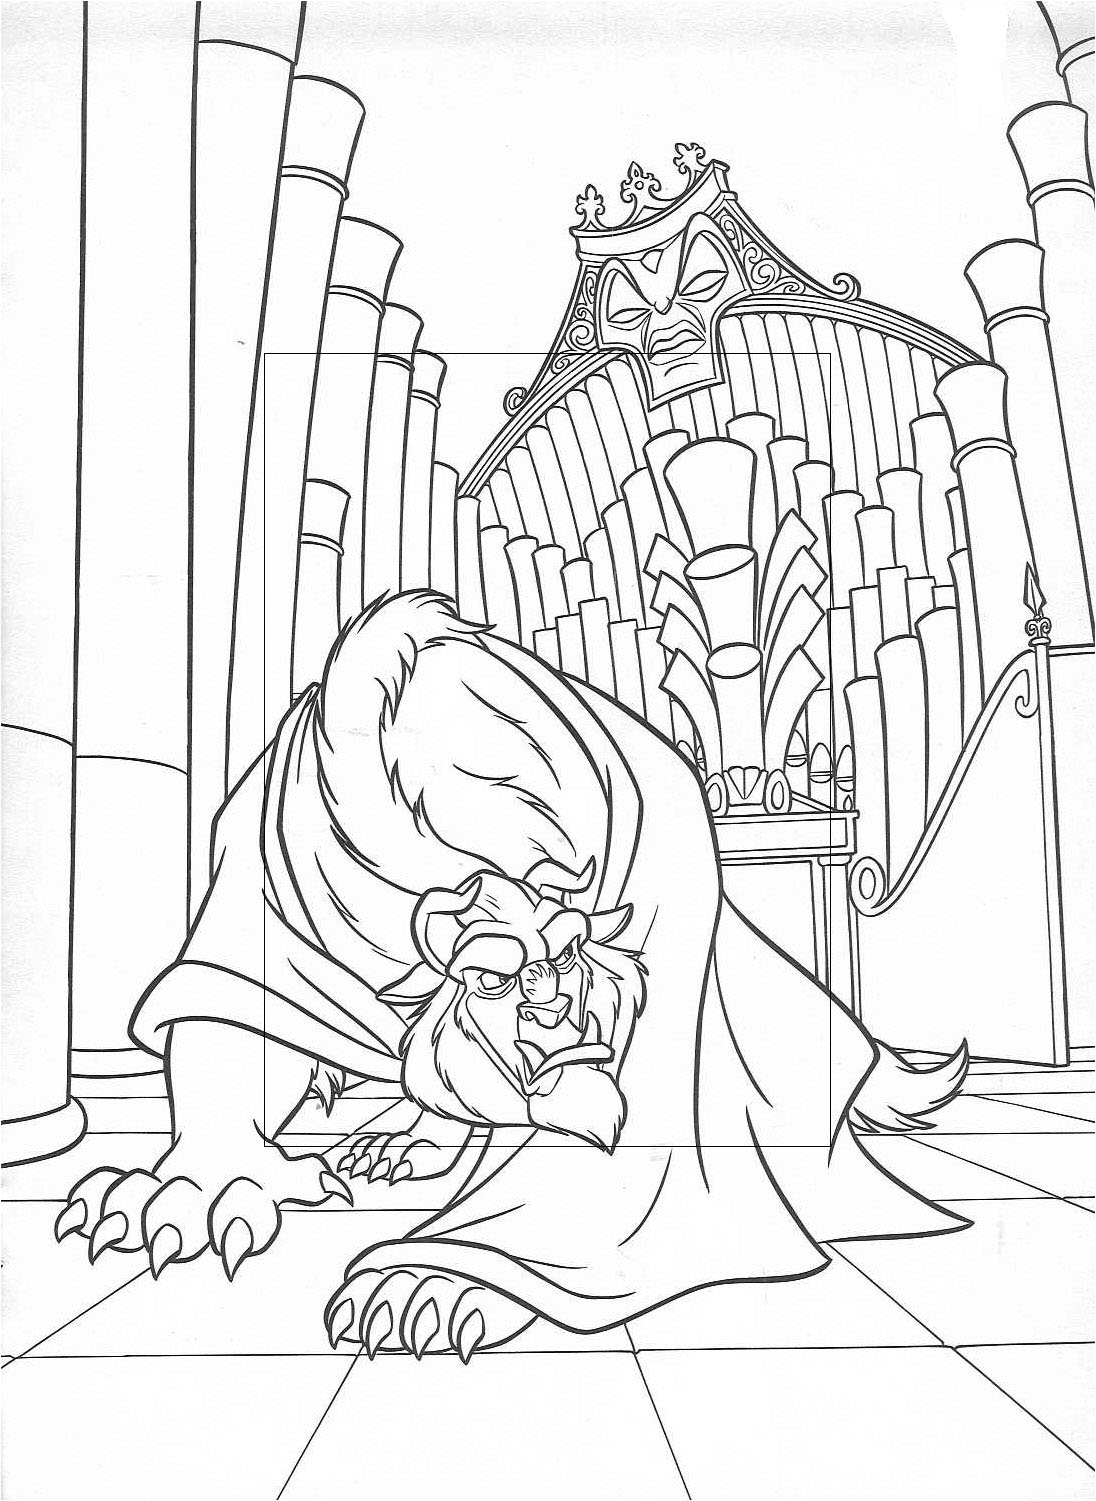 beauty-and-the-beast-coloring-page-0001-q5